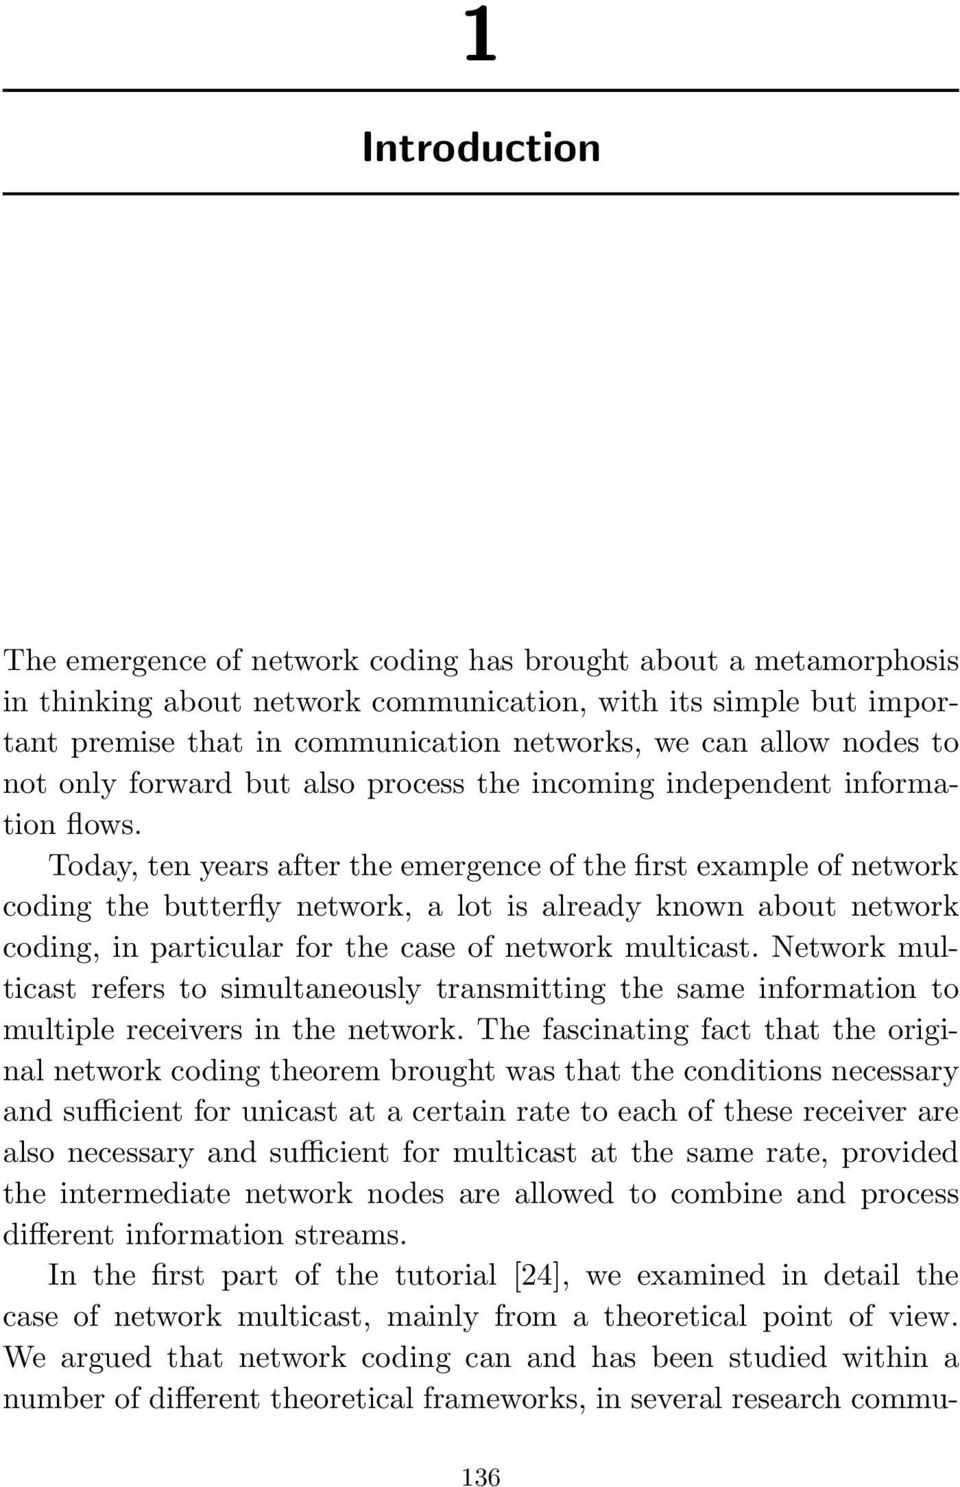 Today, ten years after the emergence of the first example of network coding the butterfly network, a lot is already known about network coding, in particular for the case of network multicast.